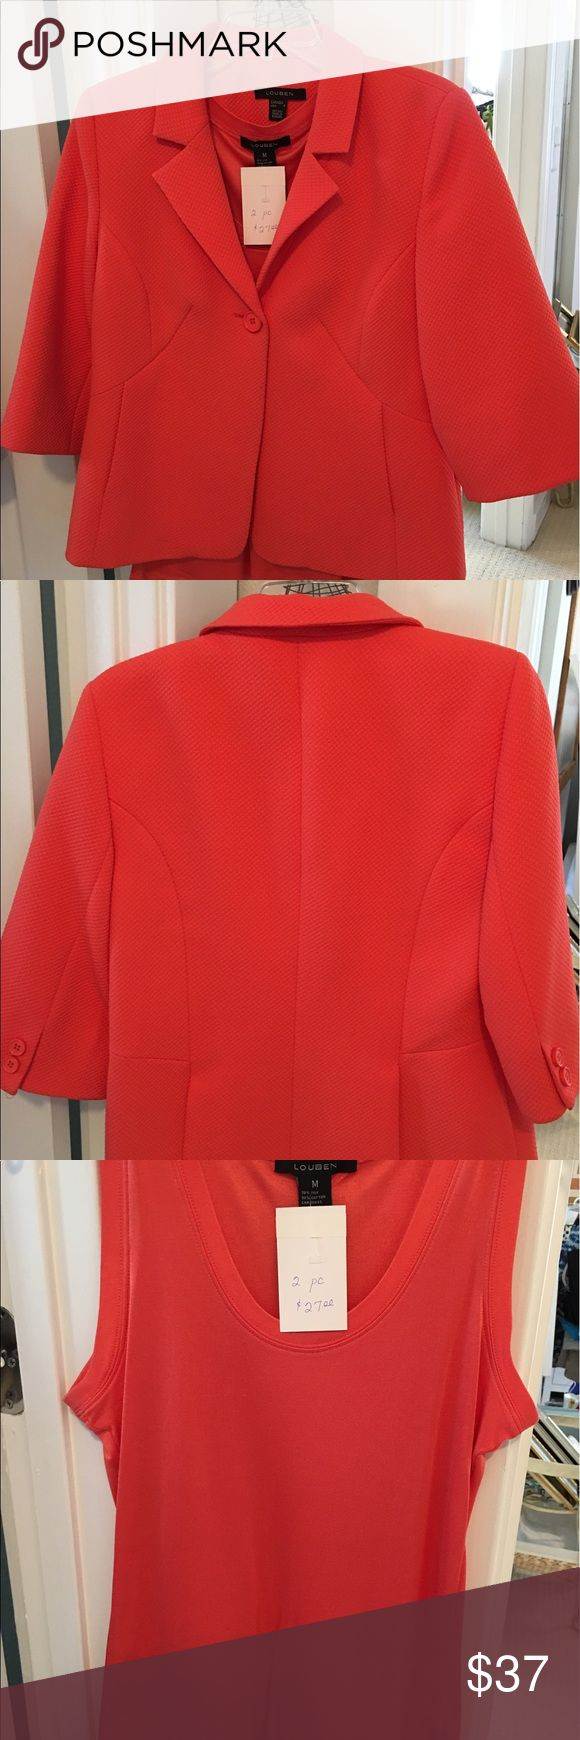 Louben ladies summer Jacket & matching shell Sz 8 Louben ladies summer Jacket & matching shell Sz 8 - Beautiful coral color with a medium silk and cotton shell underneath Louben Jackets & Coats Blazers